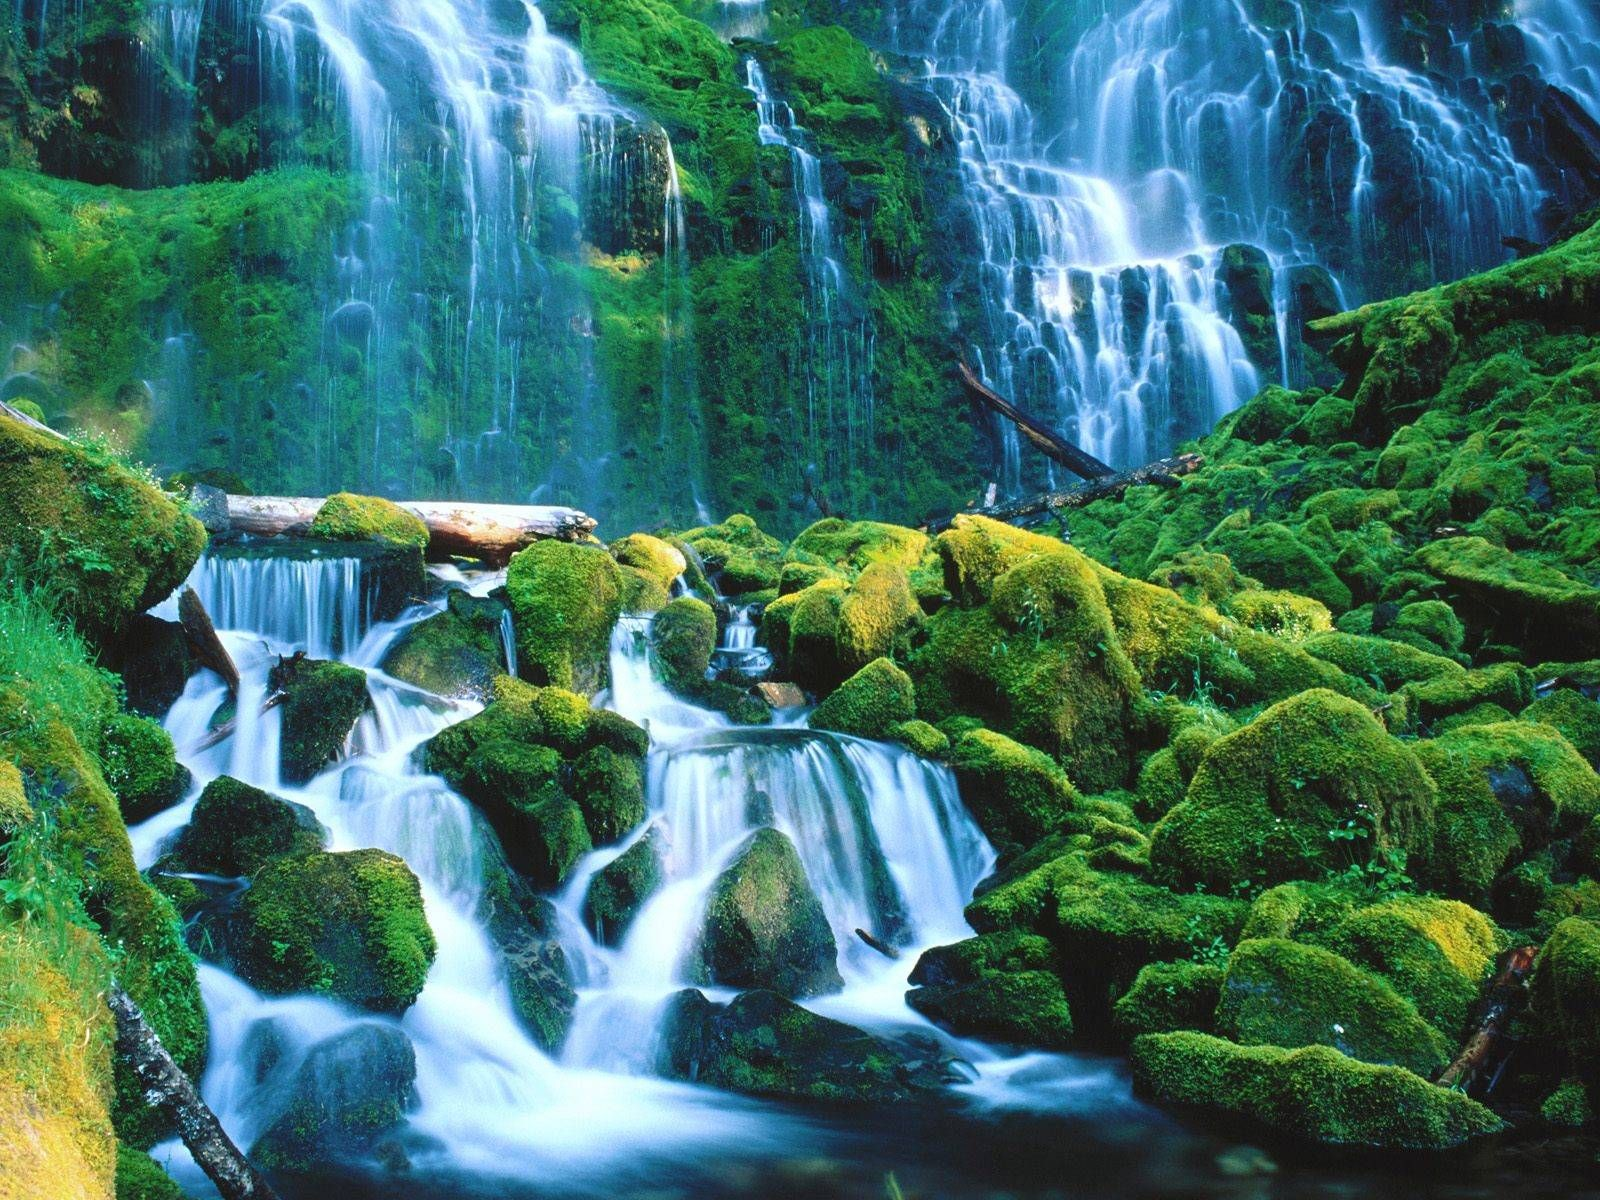 Tropical waterfall wallpaper themes landscapes and nature tropical waterfall wallpaper themes voltagebd Image collections